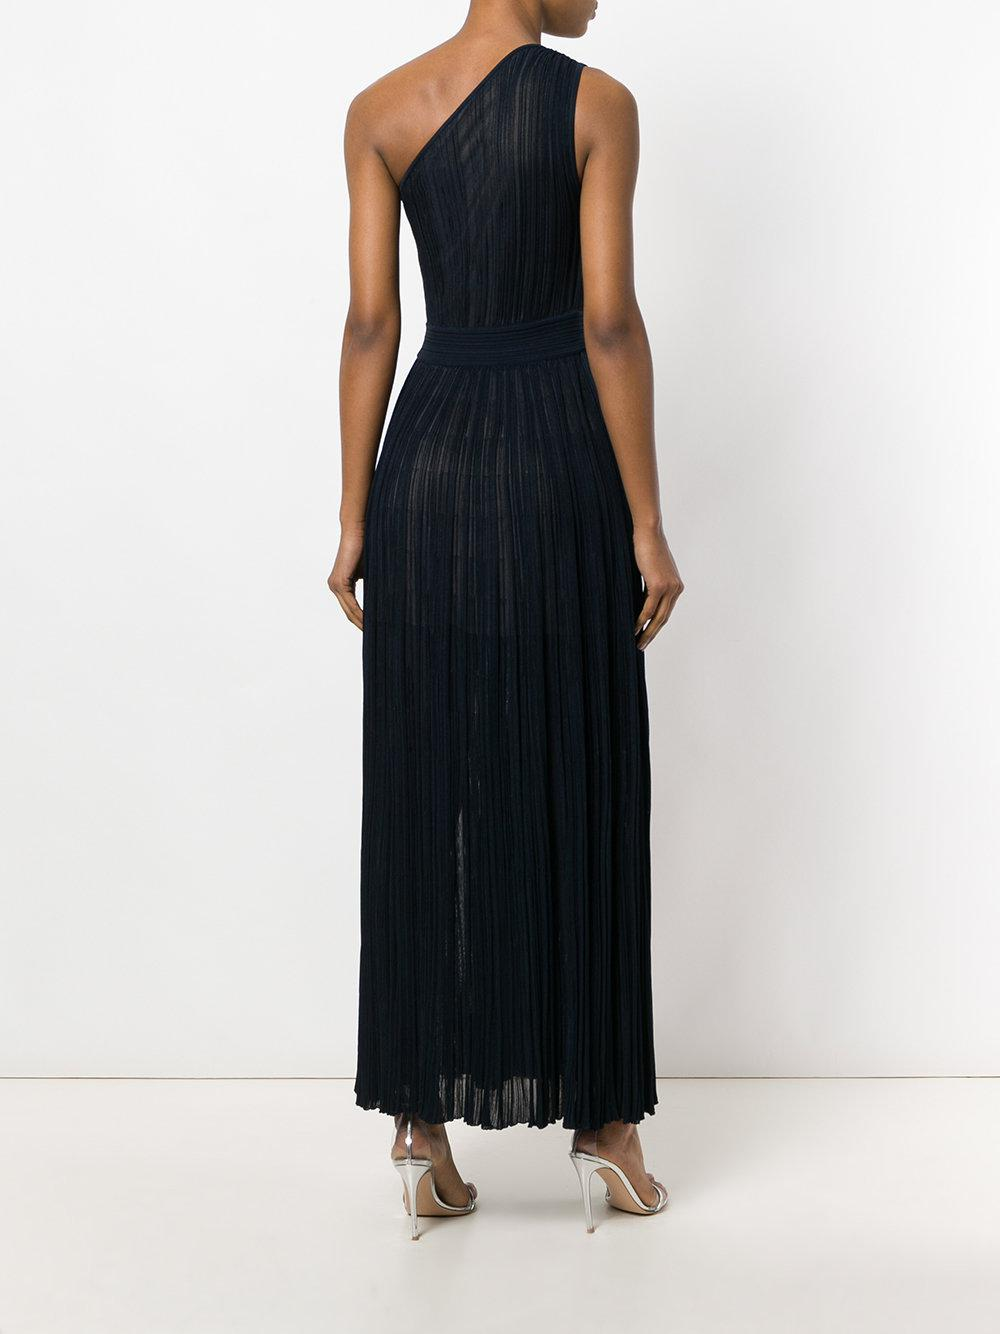 Lyst - Antonino Valenti One-shoulder Jersey-knit Gown in Blue